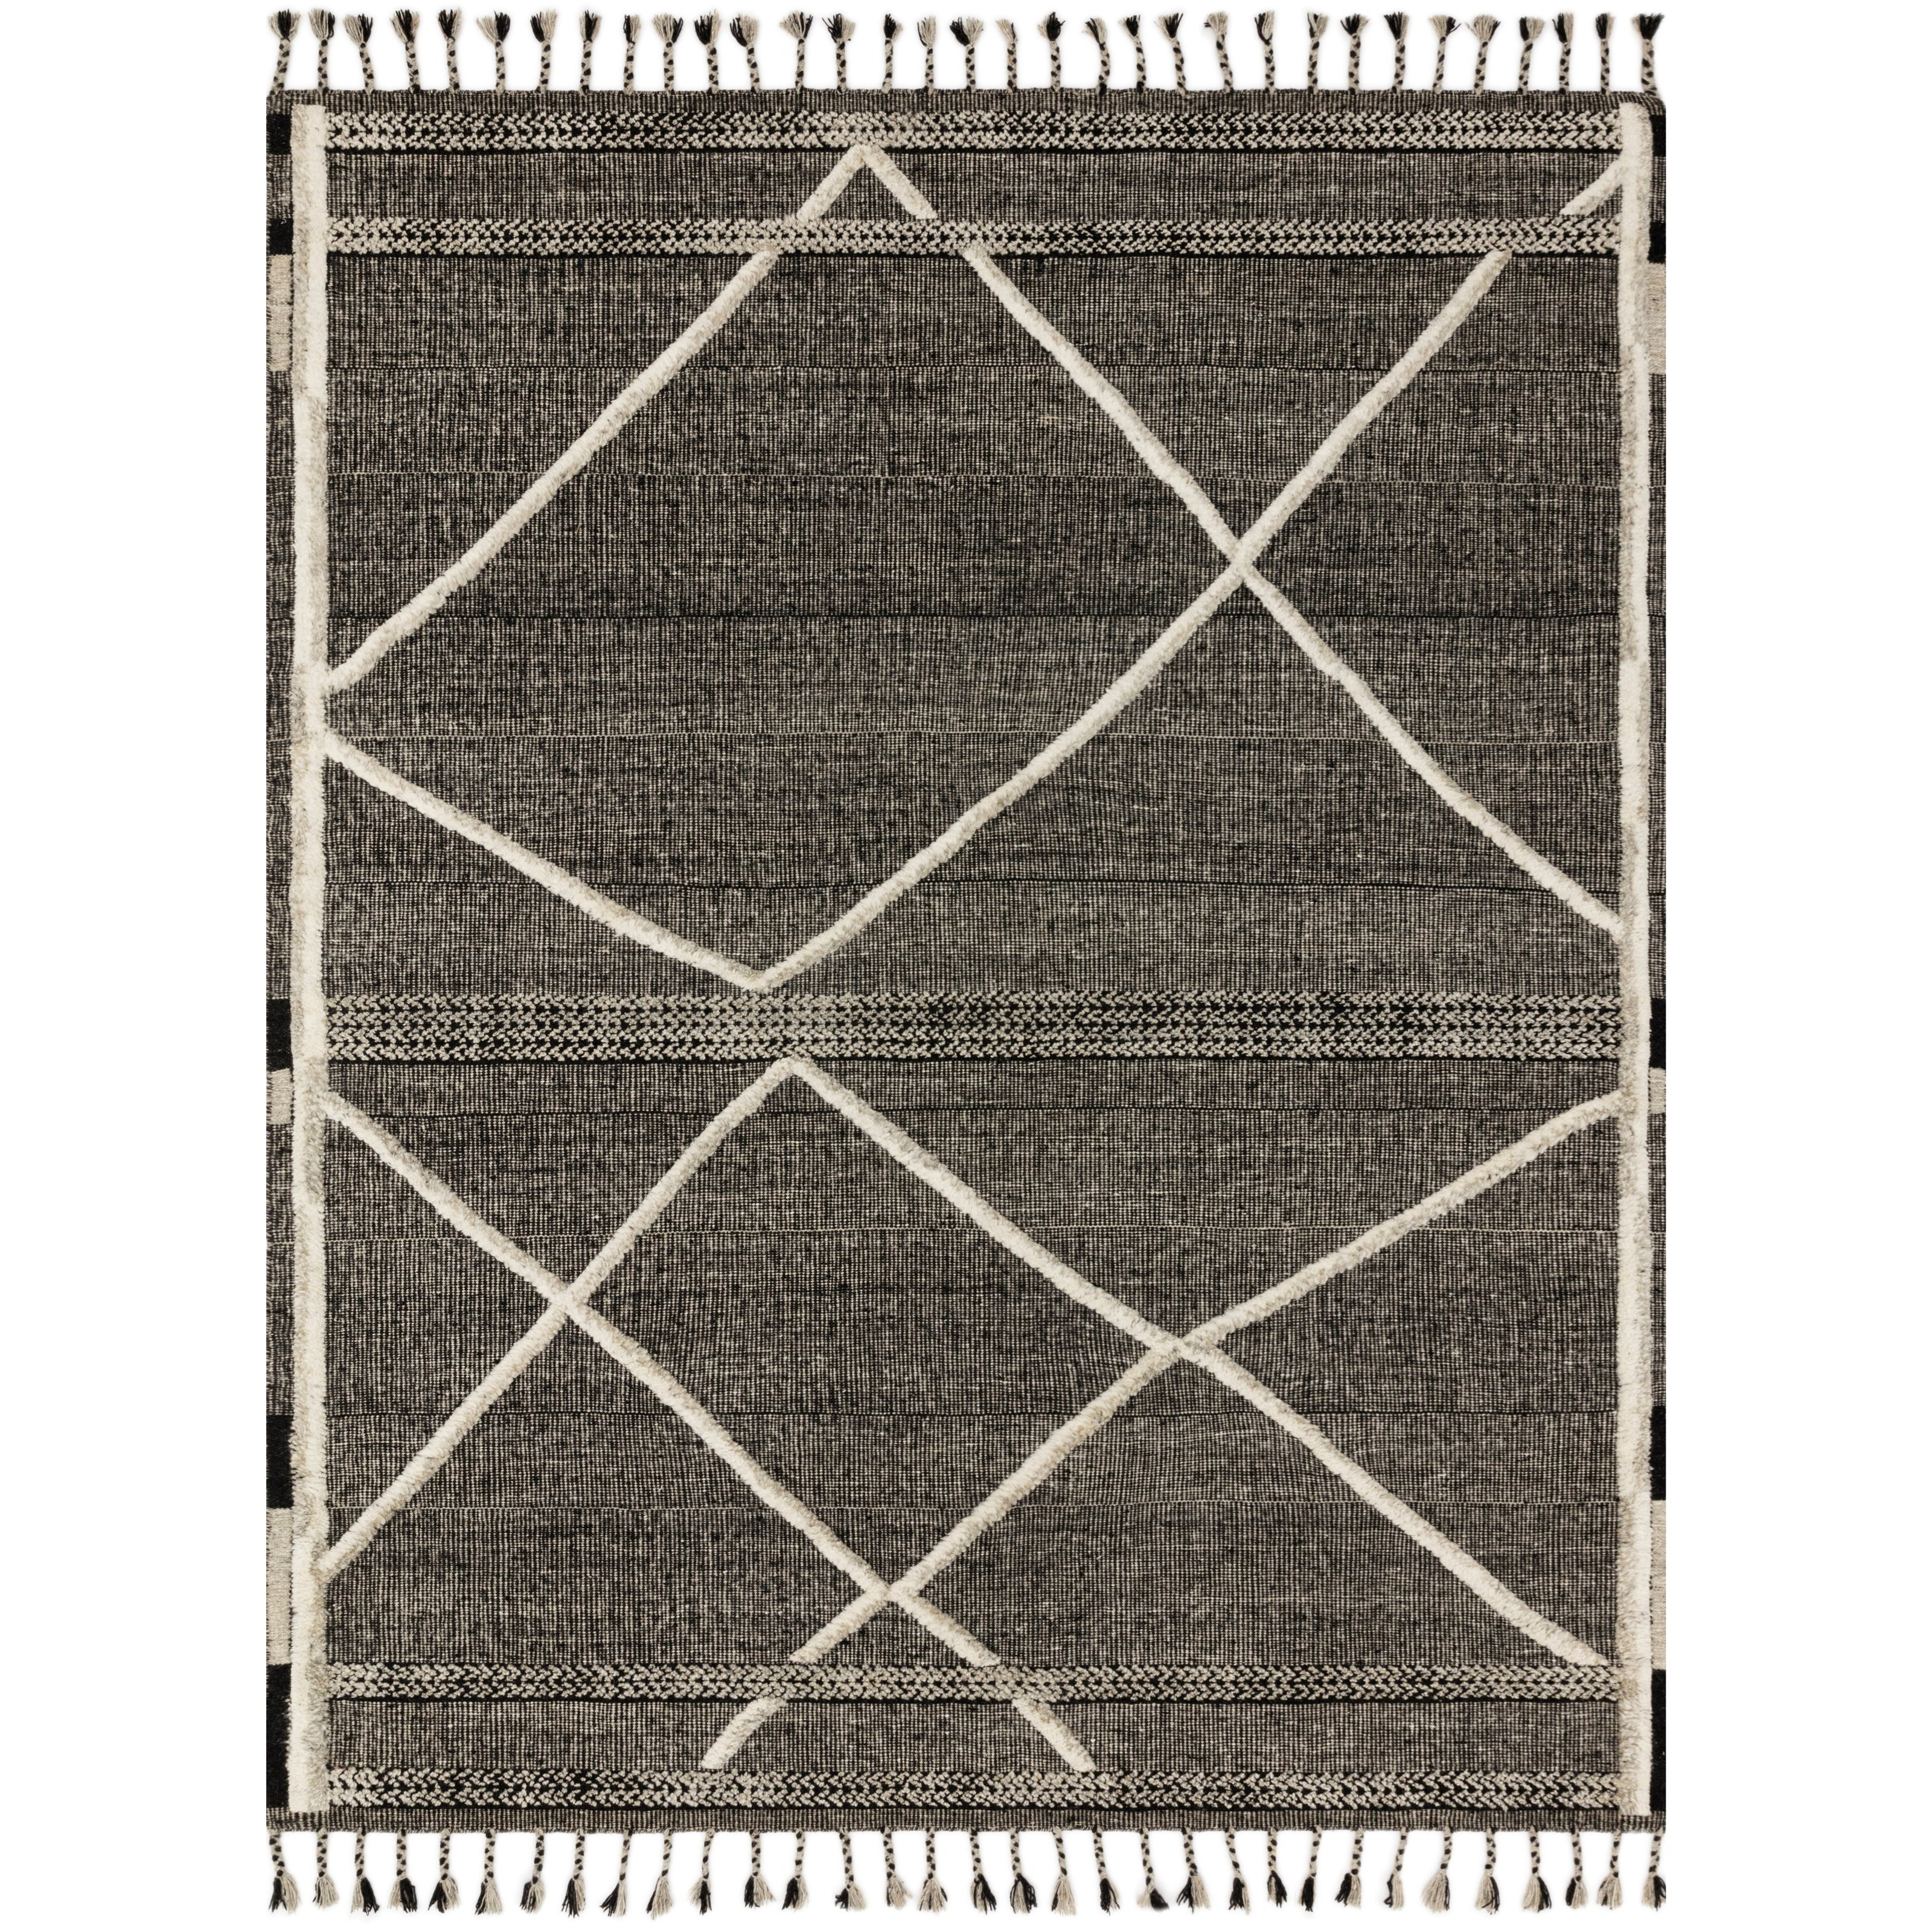 """Iman 2'0"""" x 3'0"""" Beige / Charcoal Rug by Loloi Rugs at Virginia Furniture Market"""